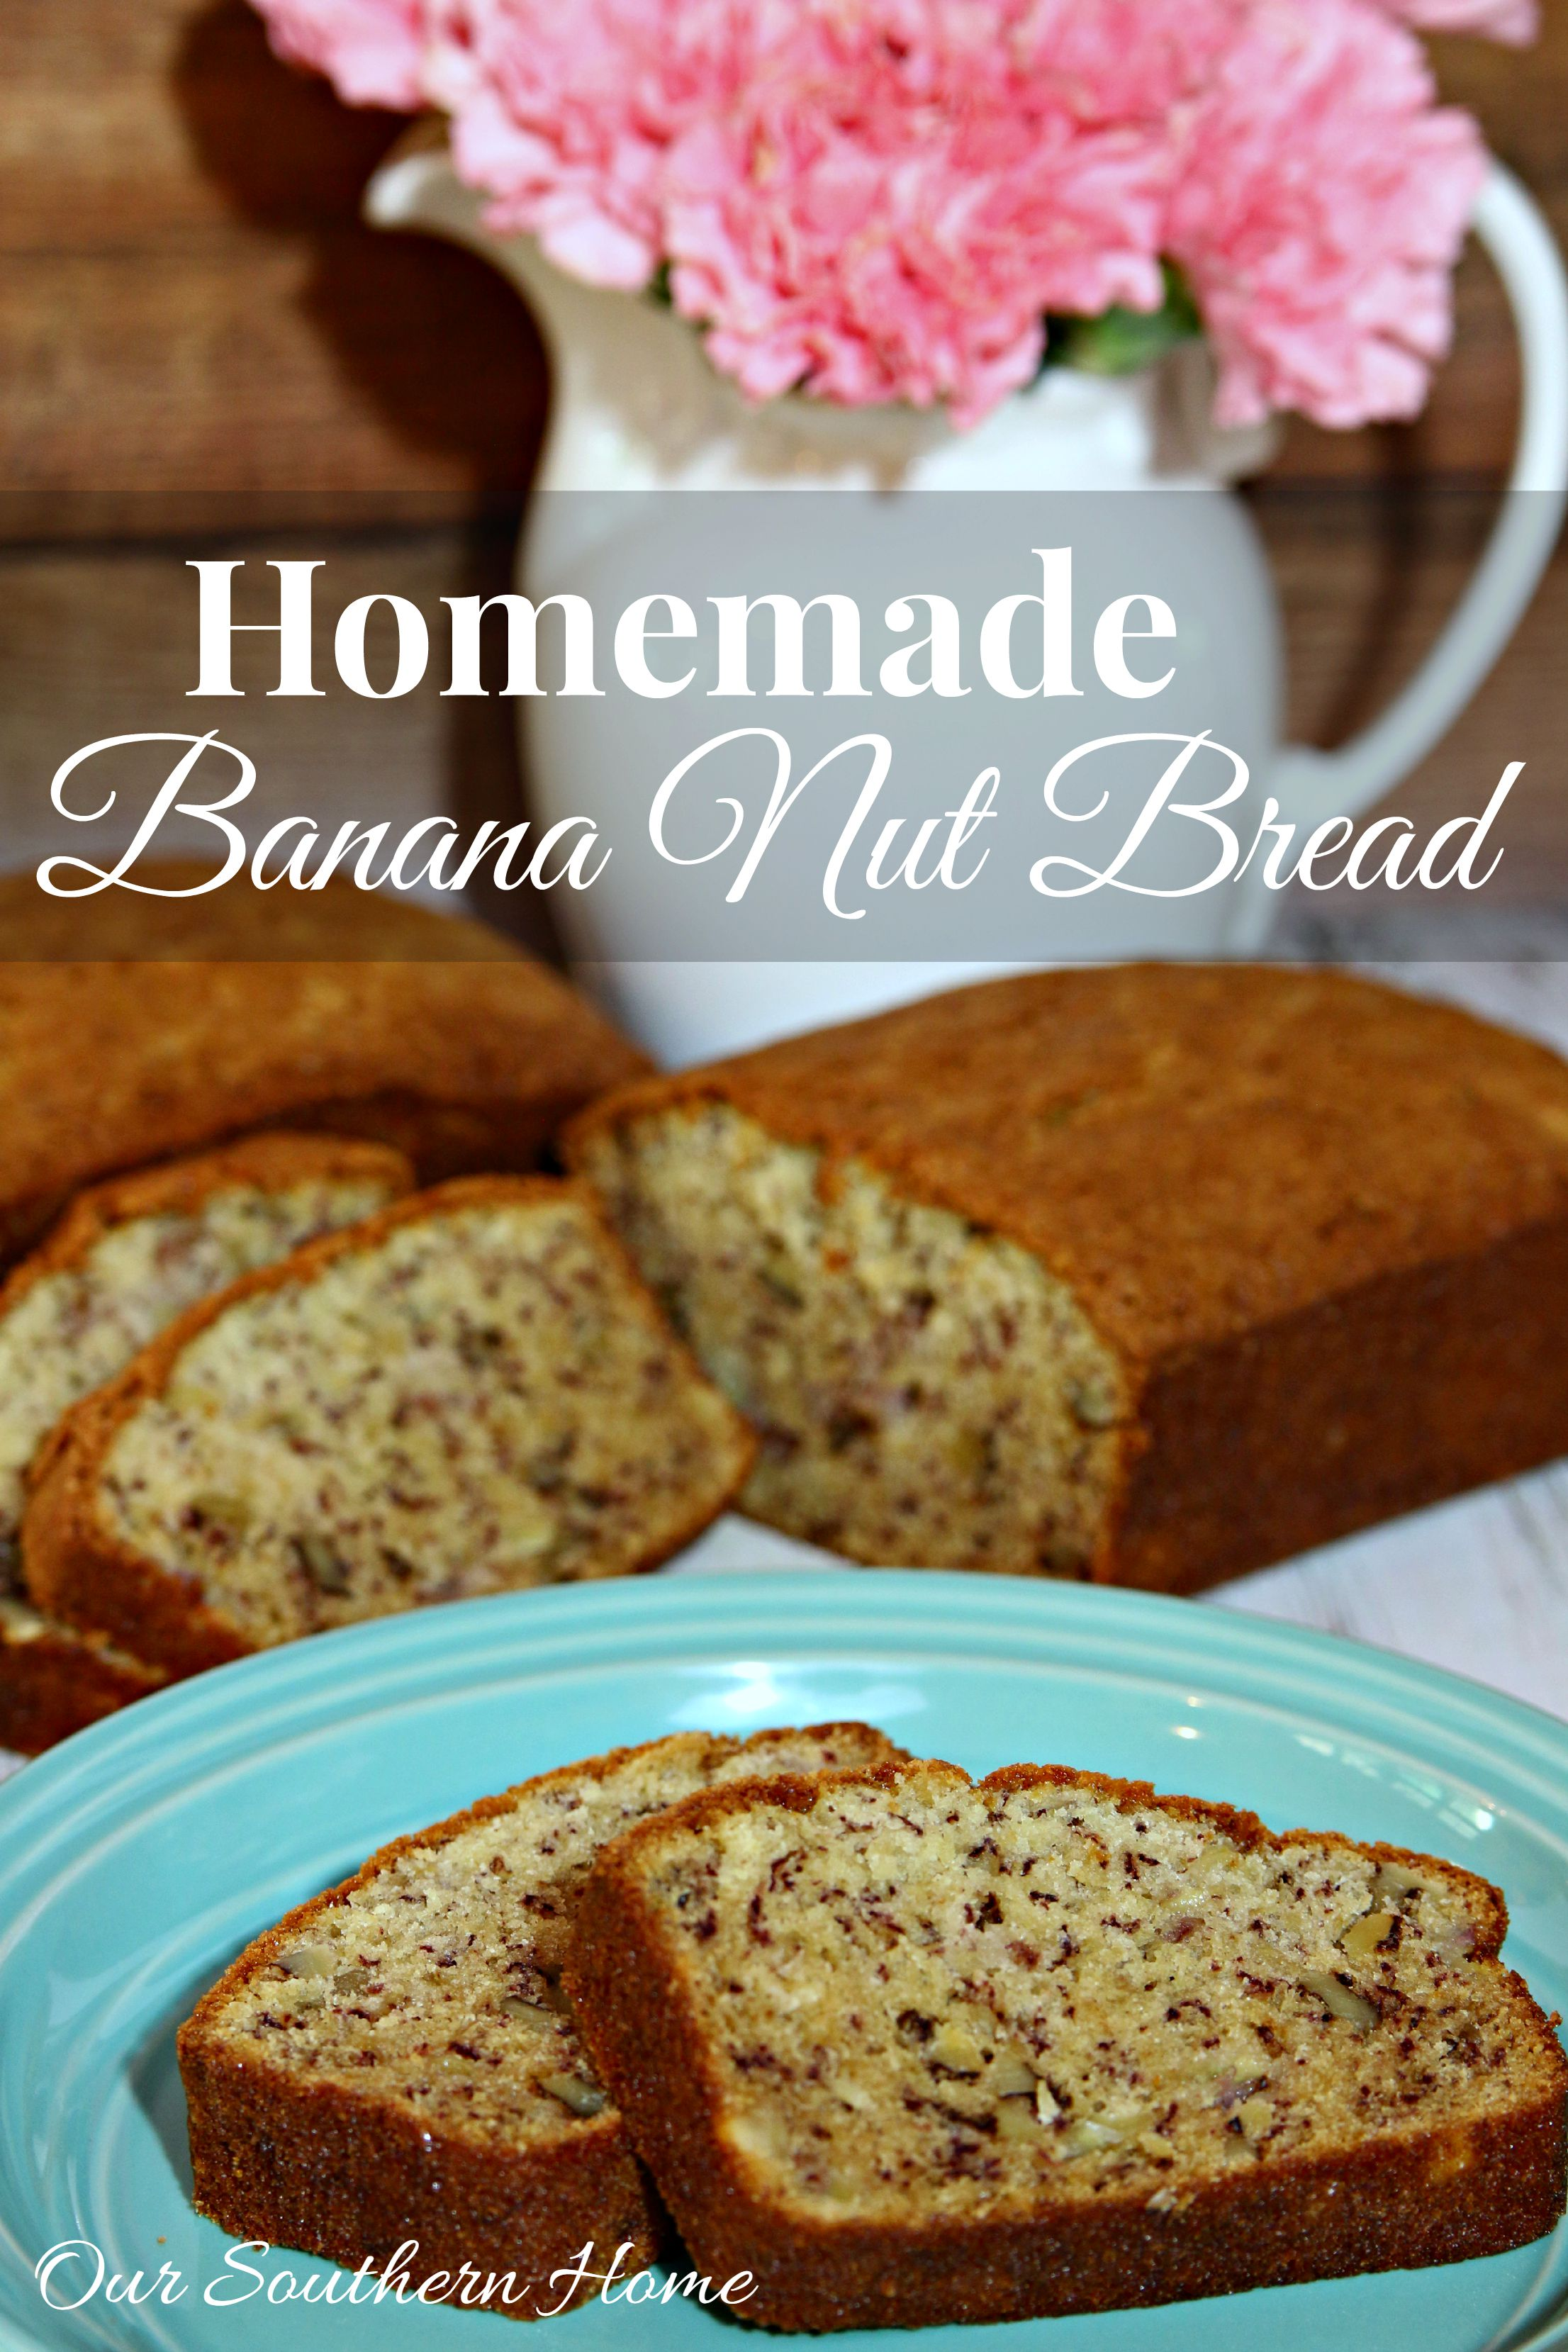 Homemade banana nut bread our southern home forumfinder Image collections